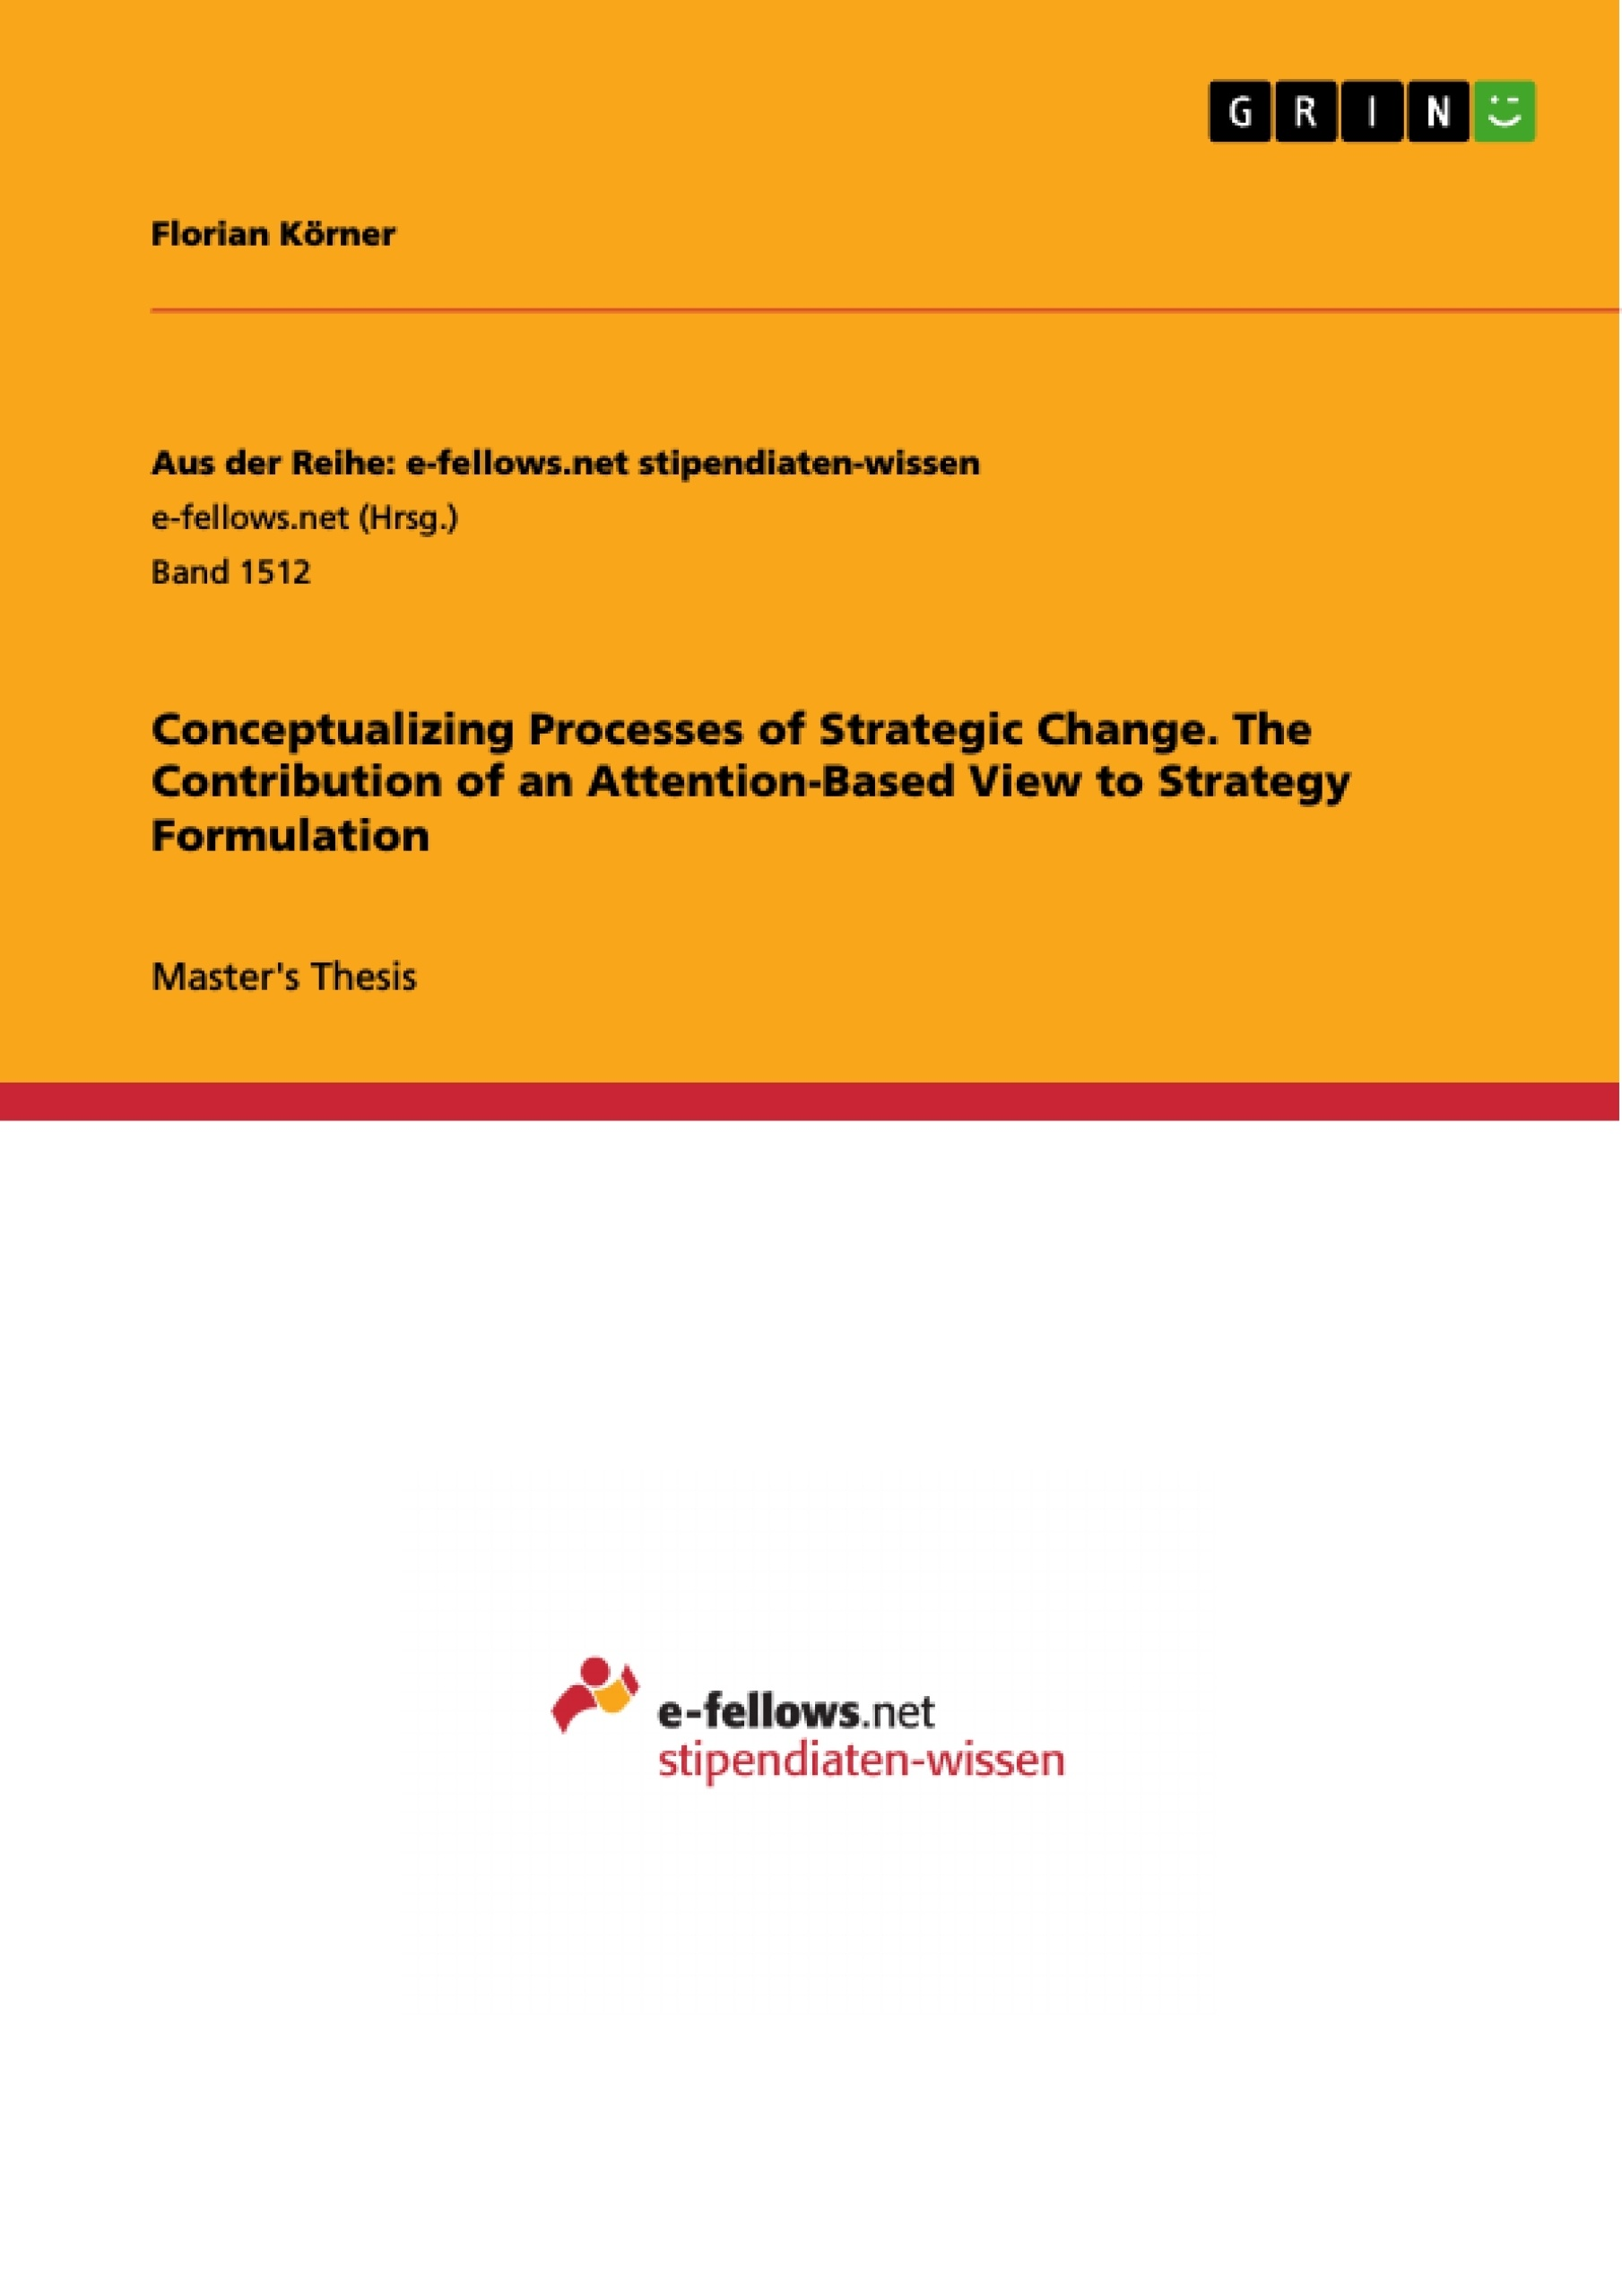 Title: Conceptualizing Processes of Strategic Change. The Contribution of an Attention-Based View to Strategy Formulation